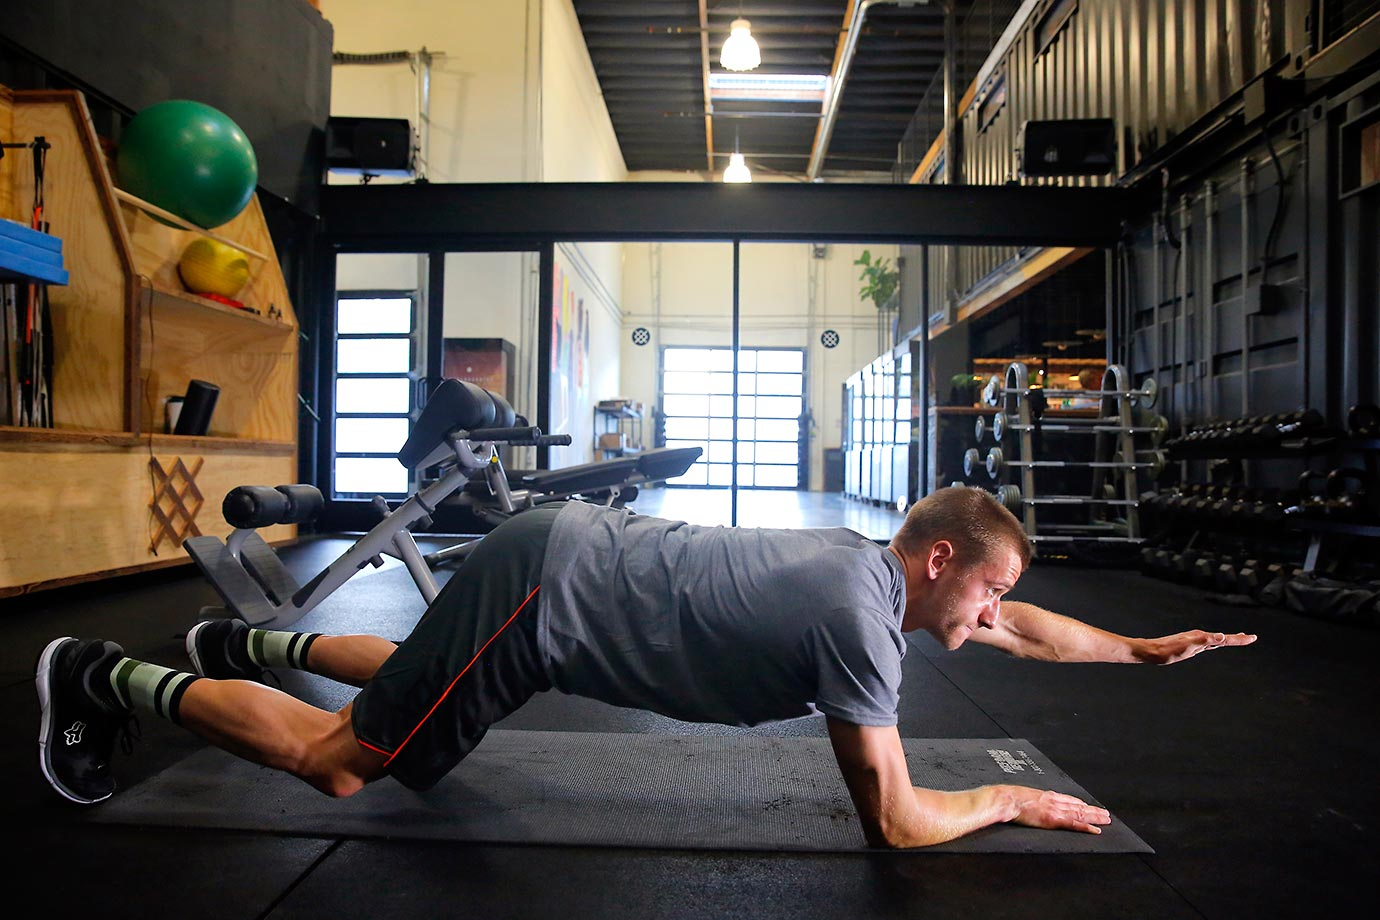 Ken Roczen works on strengthening his core and back muscles before races.